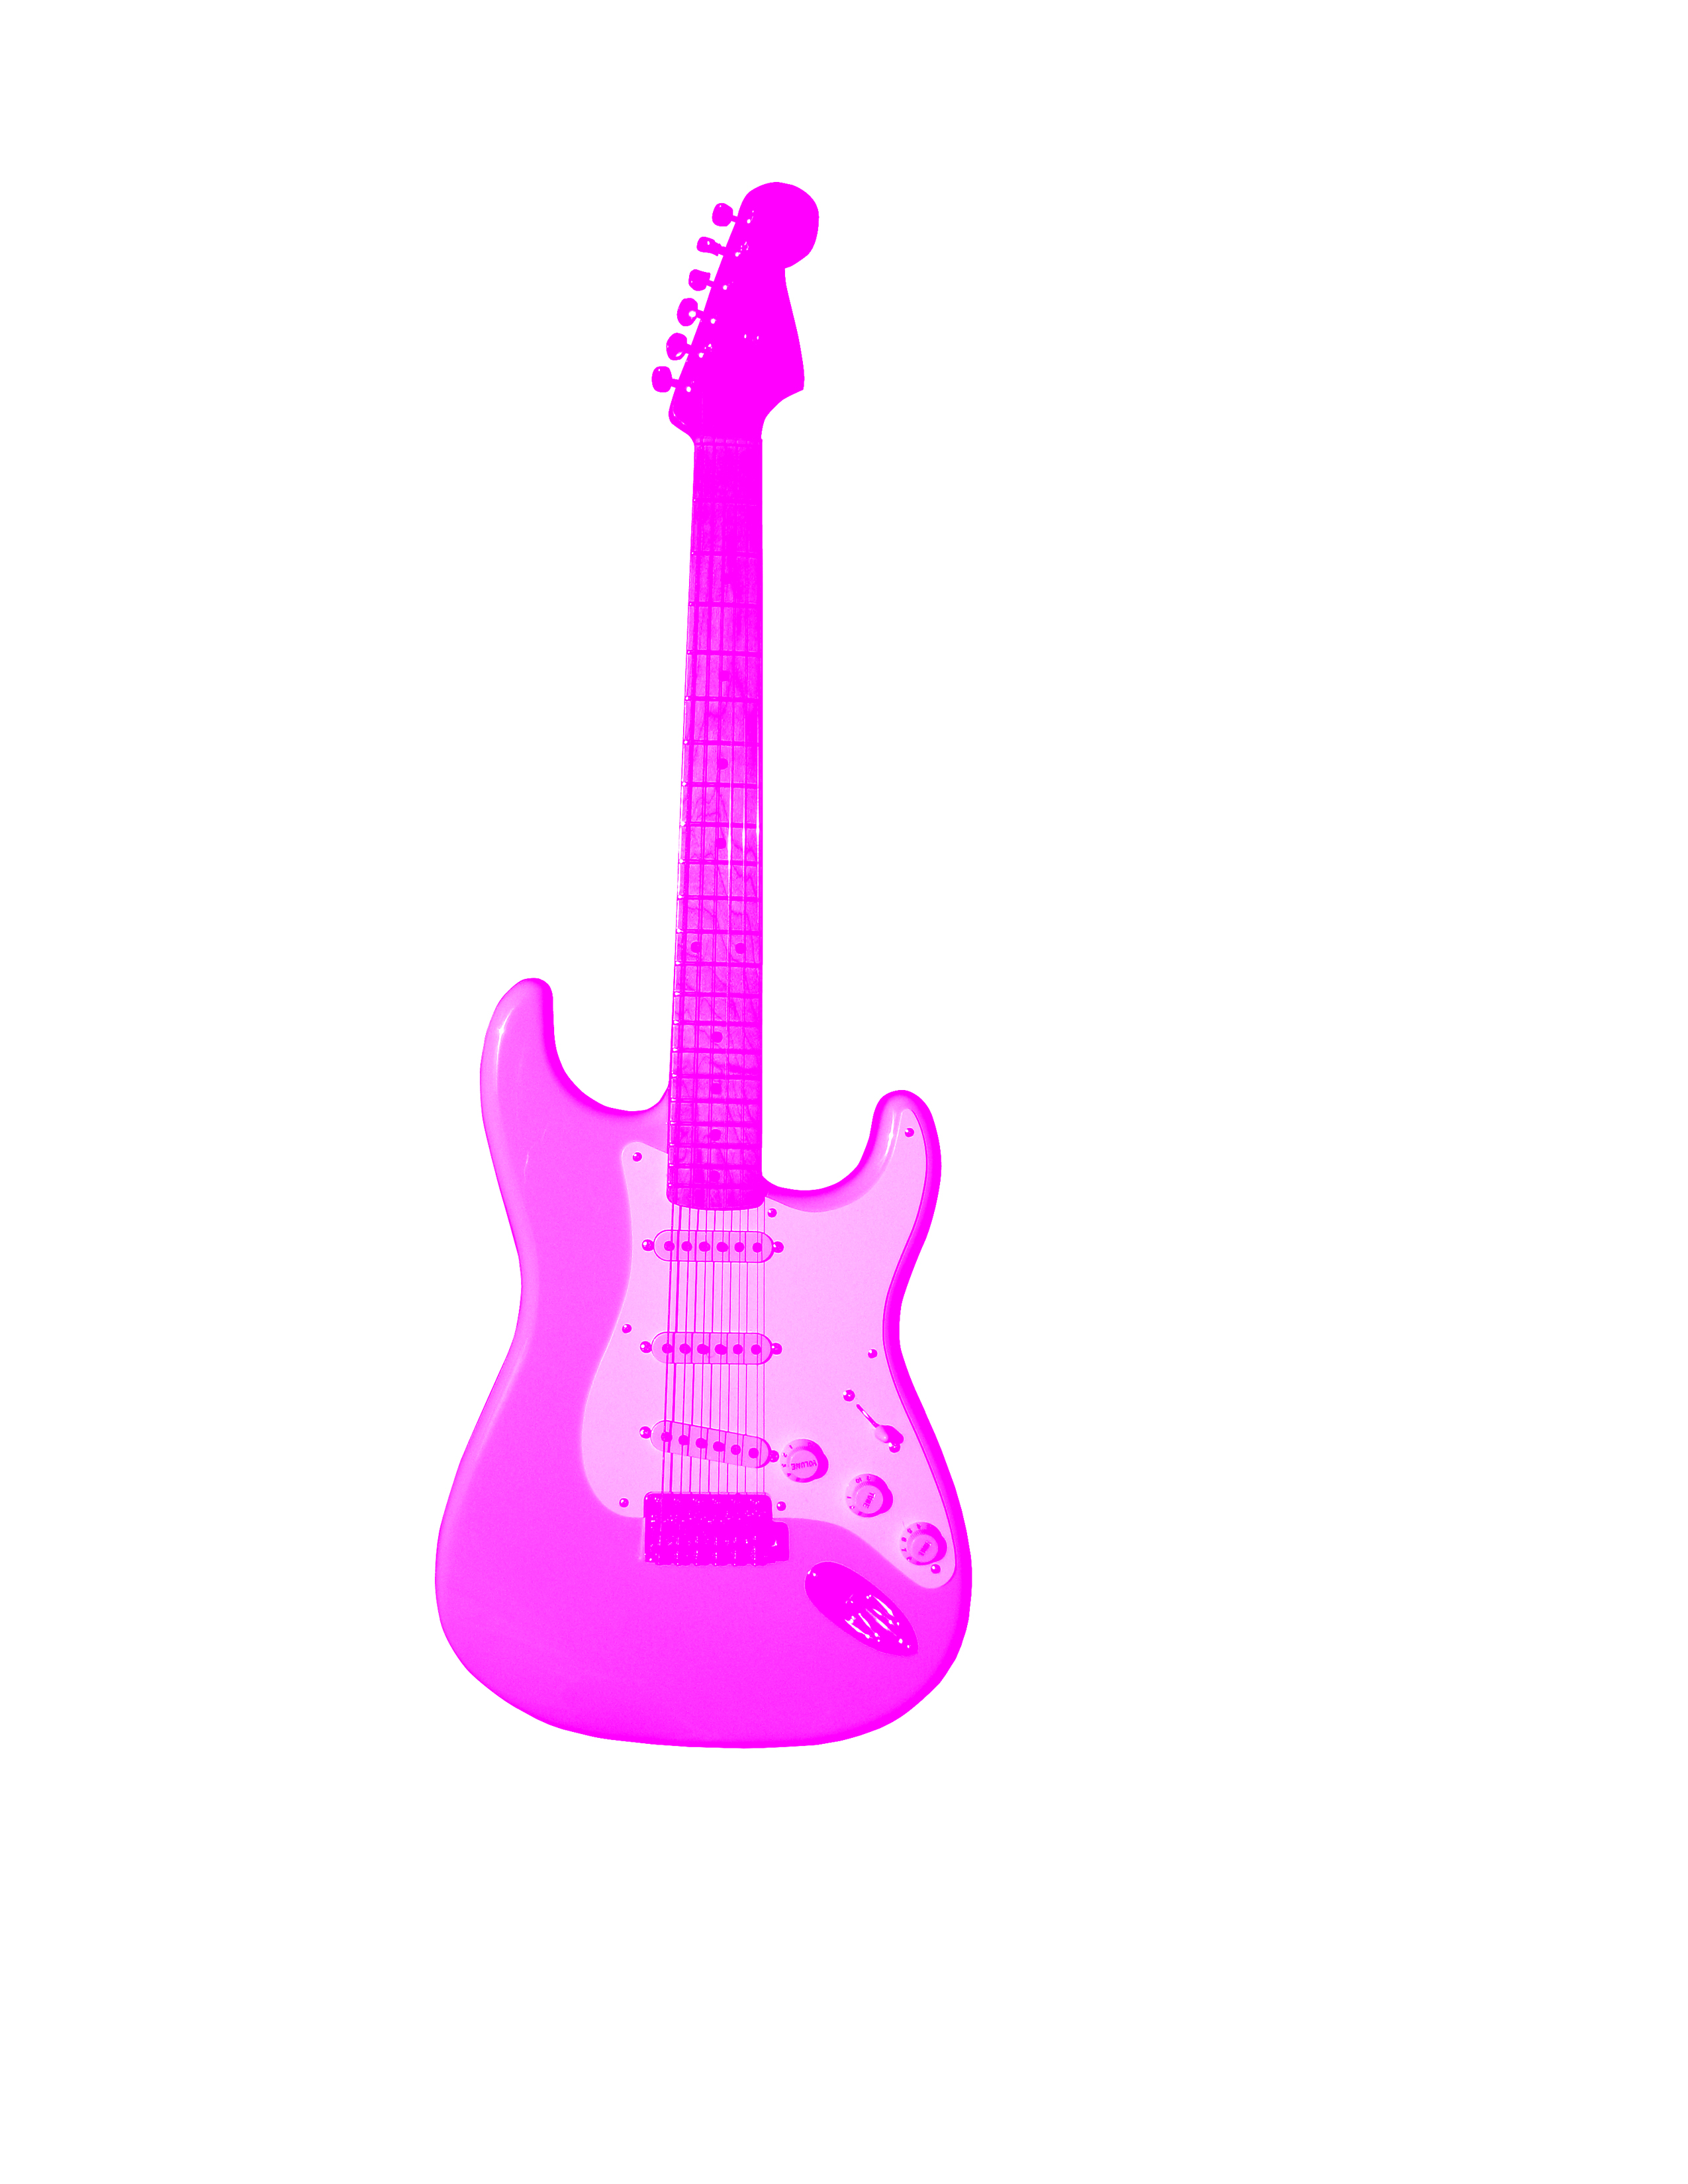 Free s cliparts download. 80's clipart 80 guitar